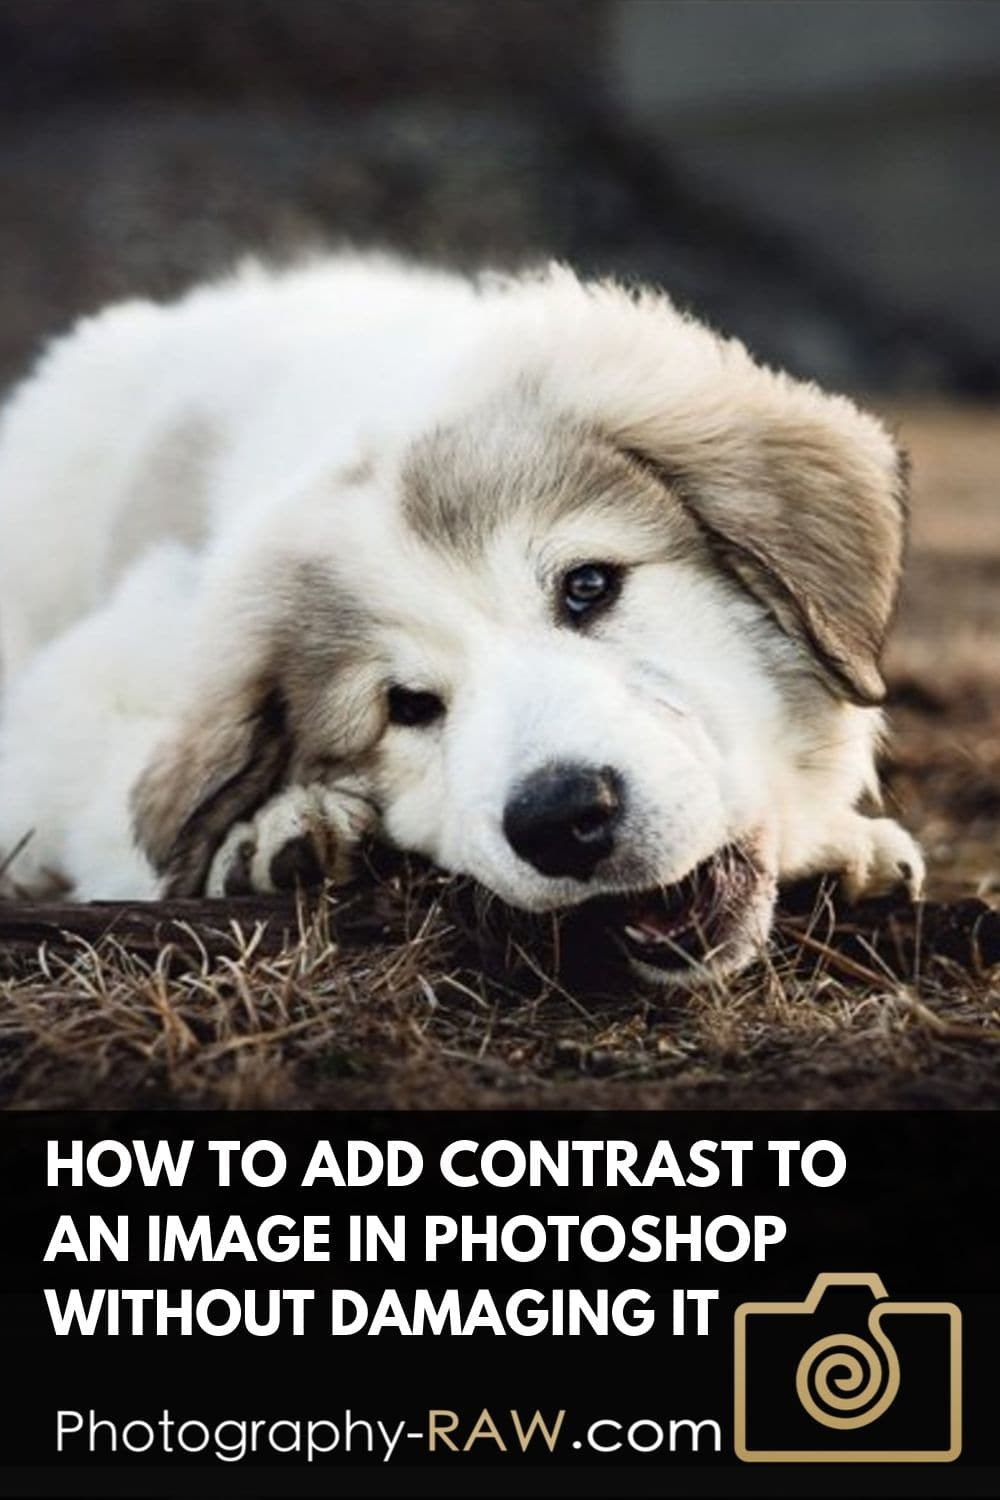 How to Add Contrast to an Image in Photoshop Without Damaging it